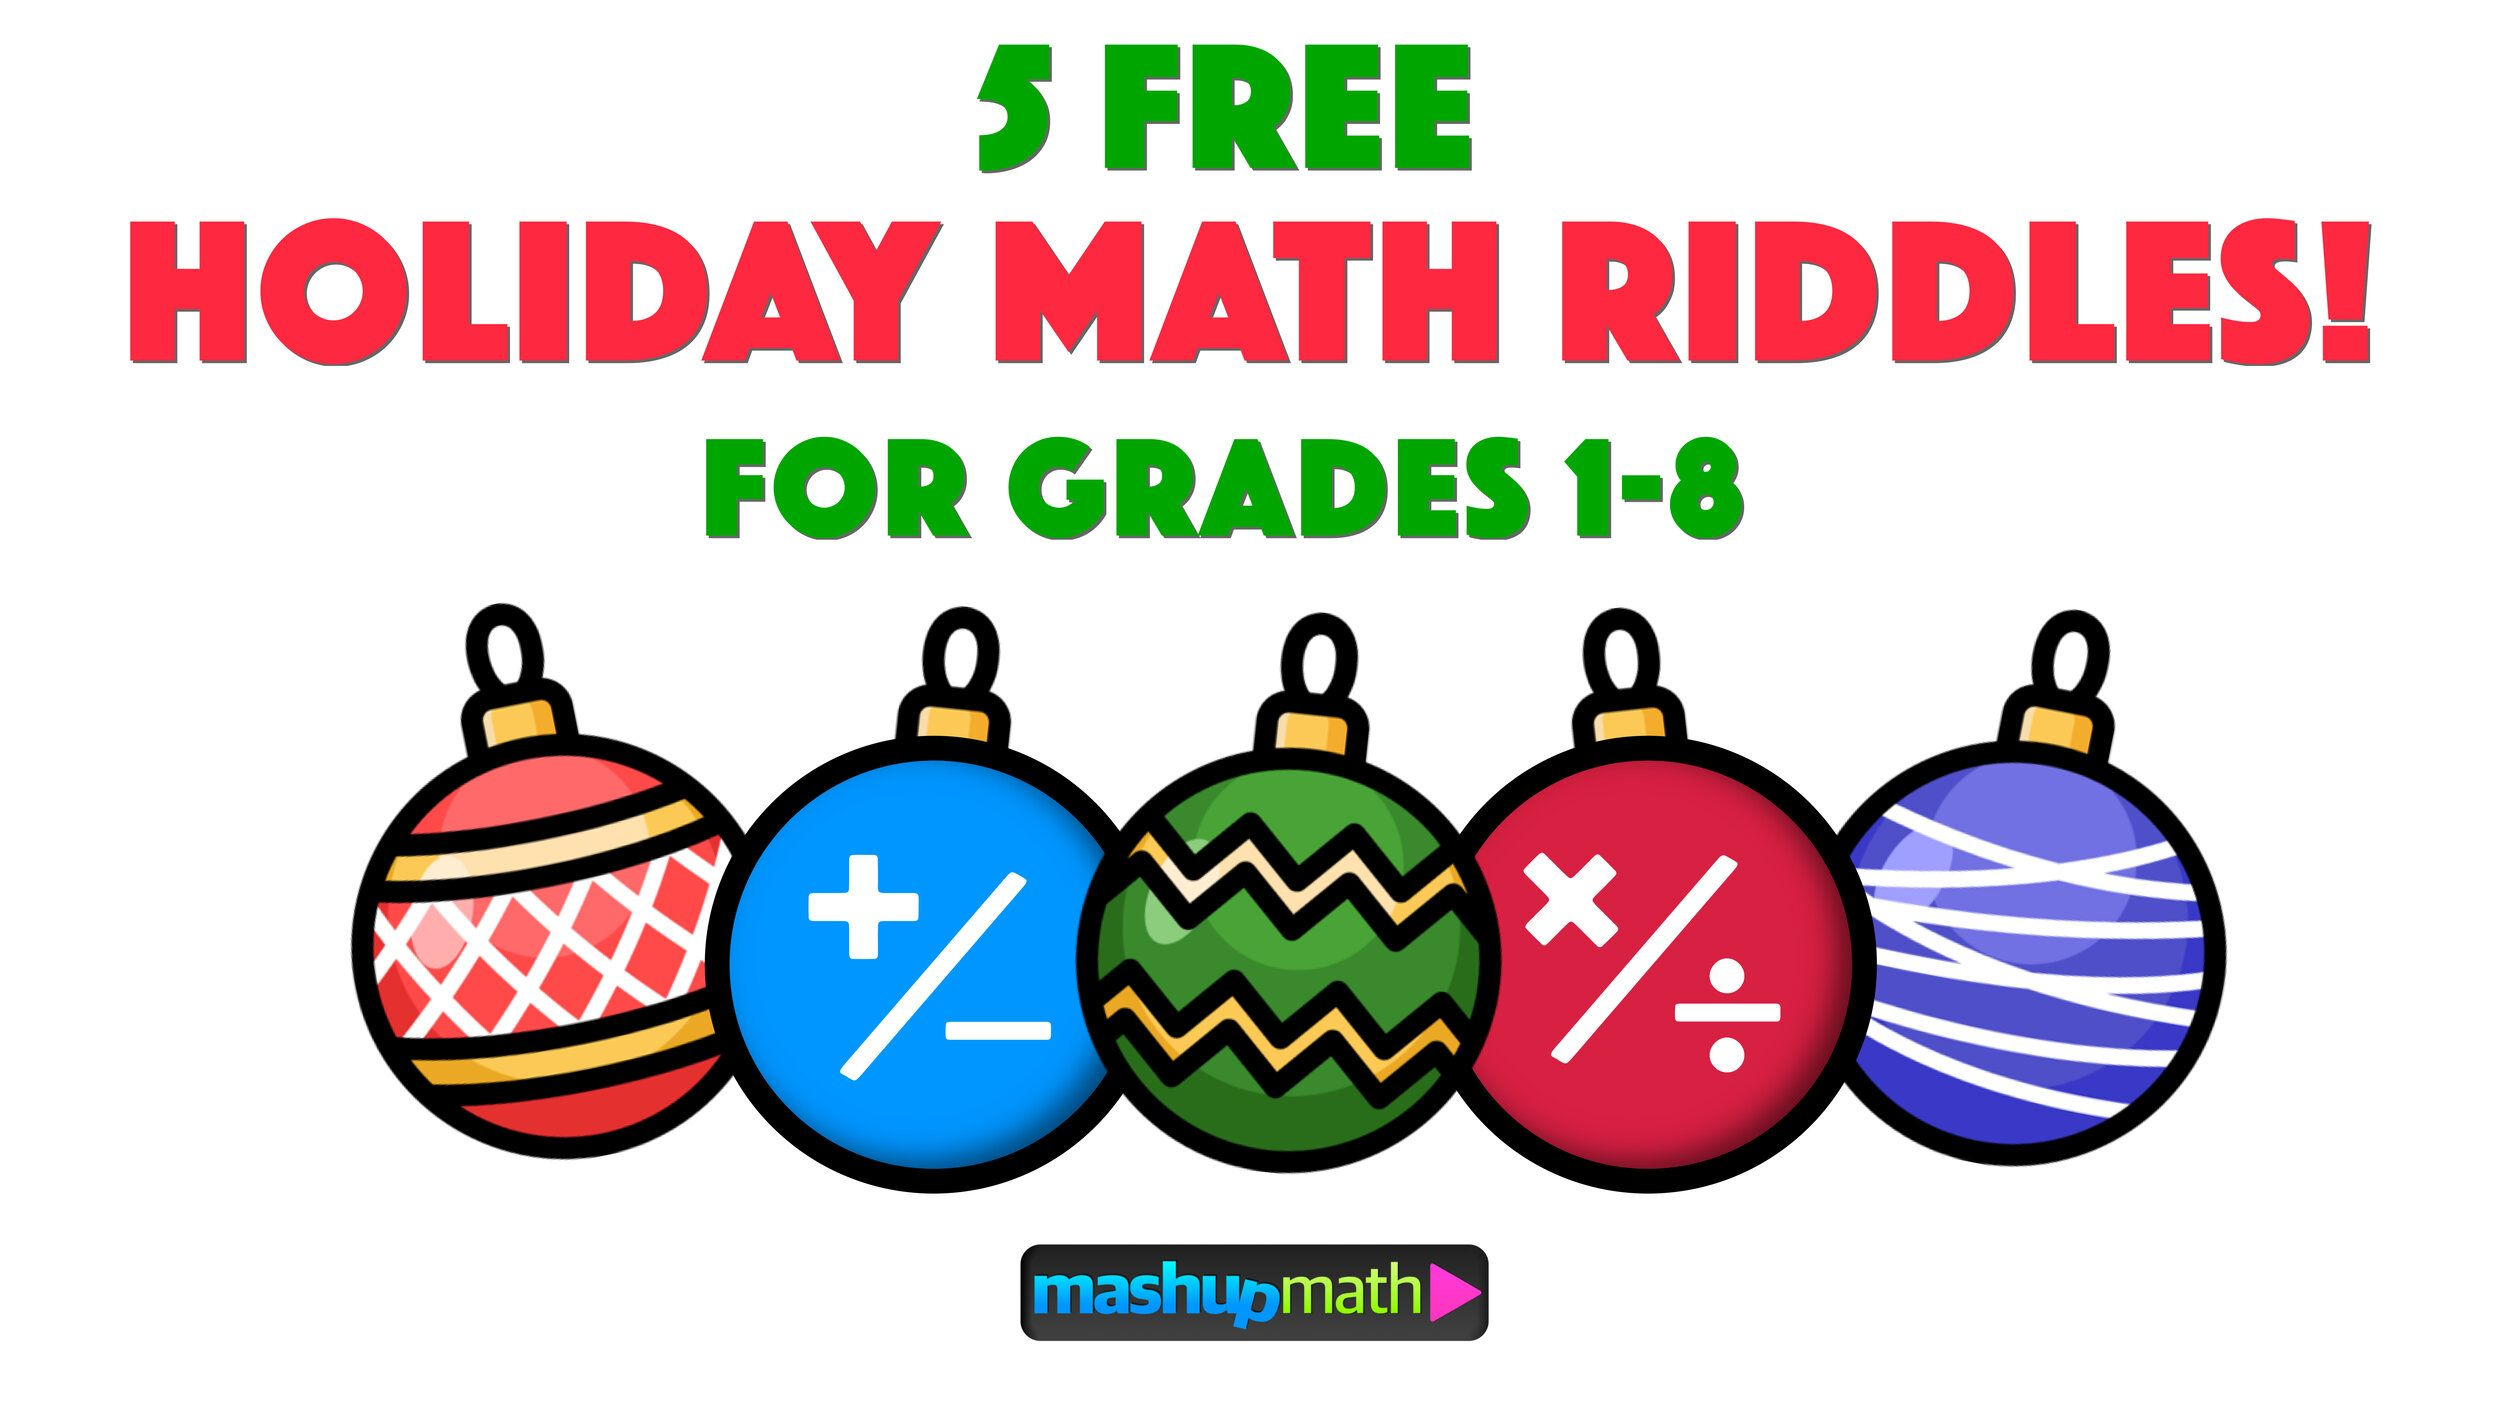 5 Fun Christmas Math Riddles And Brain Teasers For Grades 1 8 Mashup Math Math Riddles Christmas Math Worksheets Christmas Math [ 1406 x 2500 Pixel ]